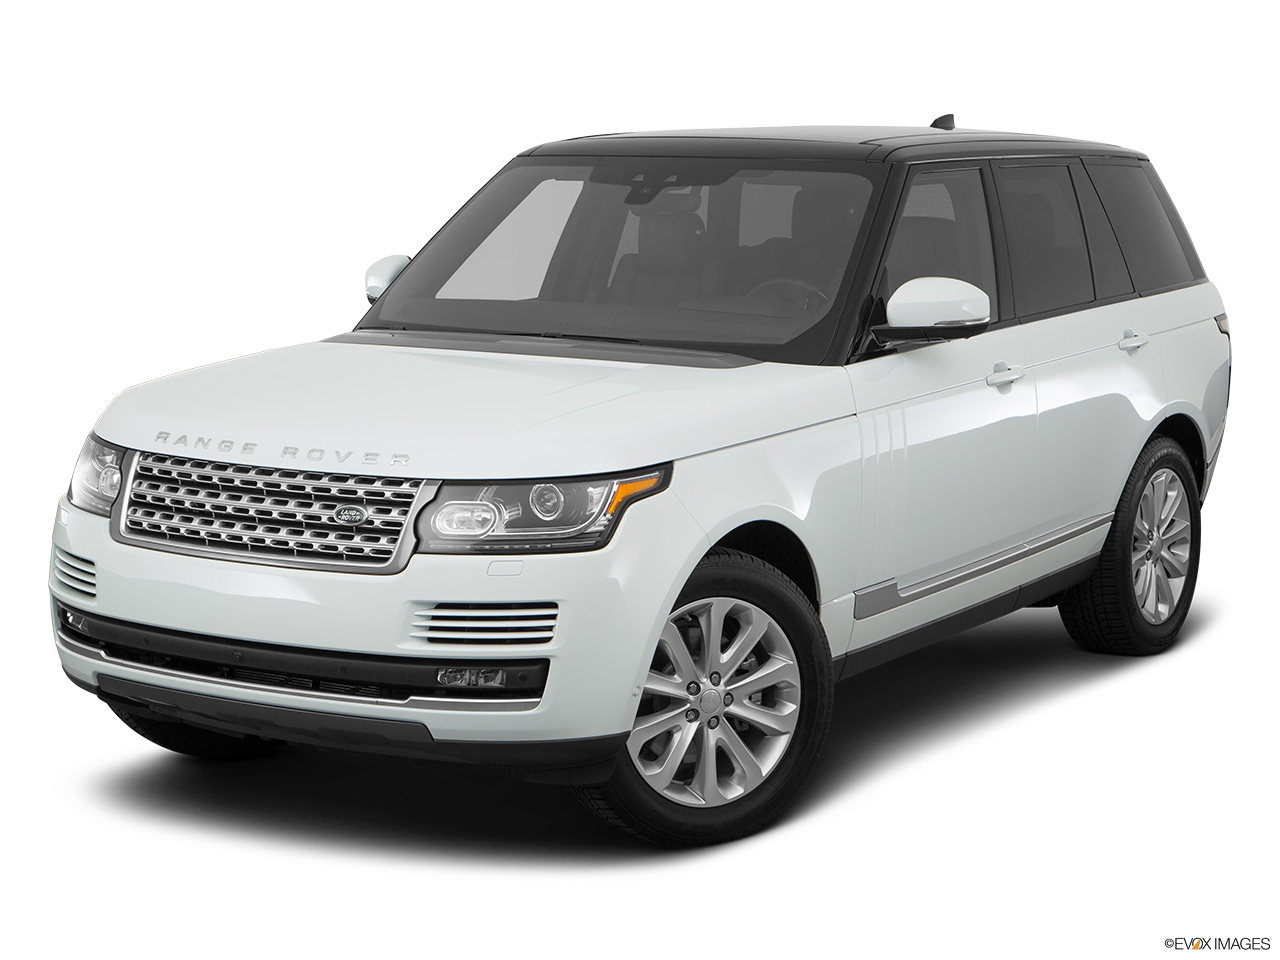 2018 Land Rover Range Rover Prices In Qatar Gulf Specs